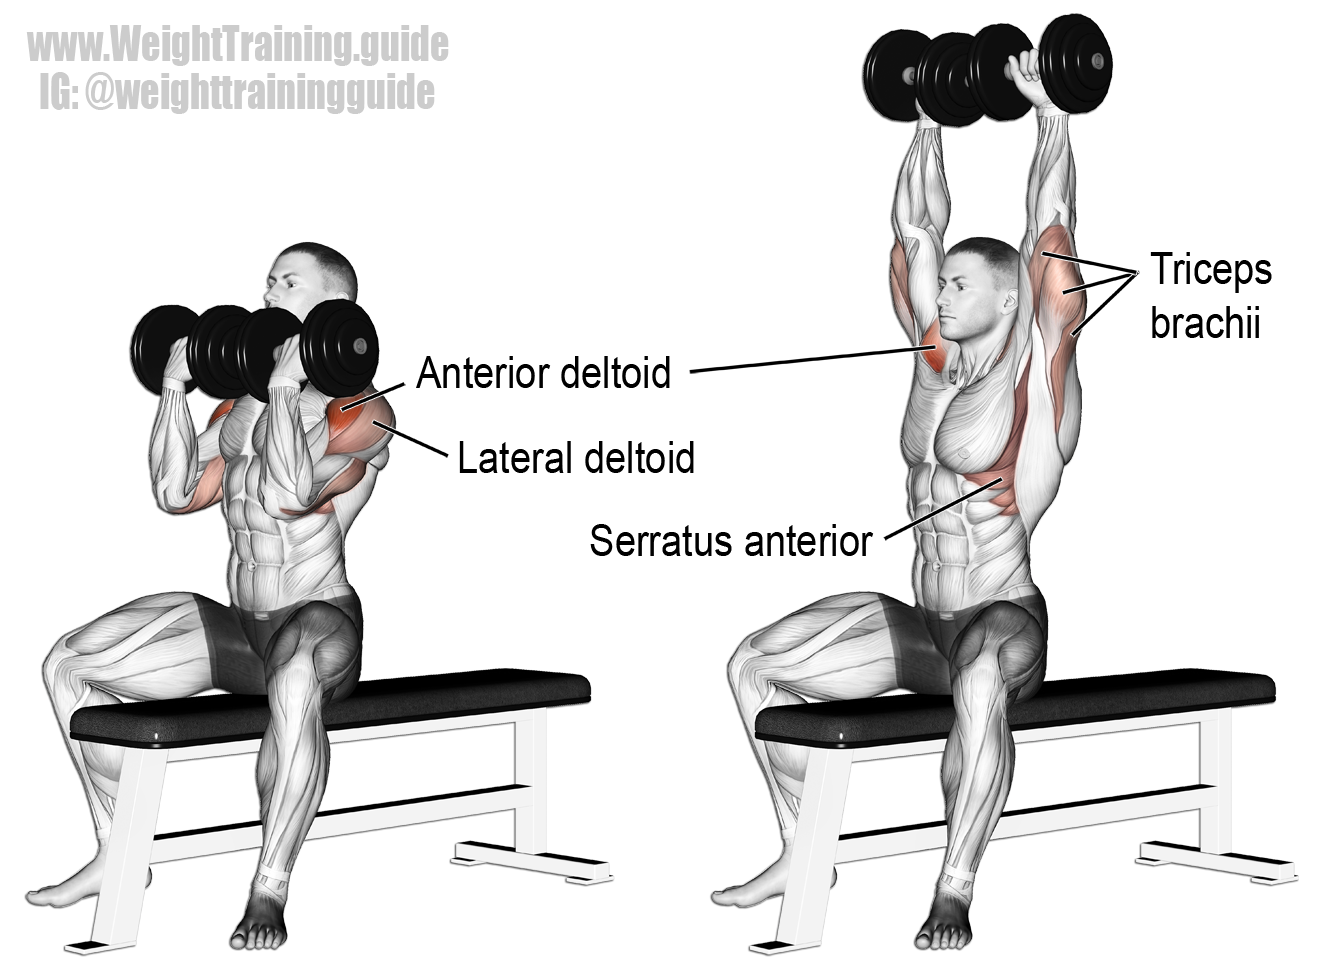 Arnold Press Exercise Instructions And Video